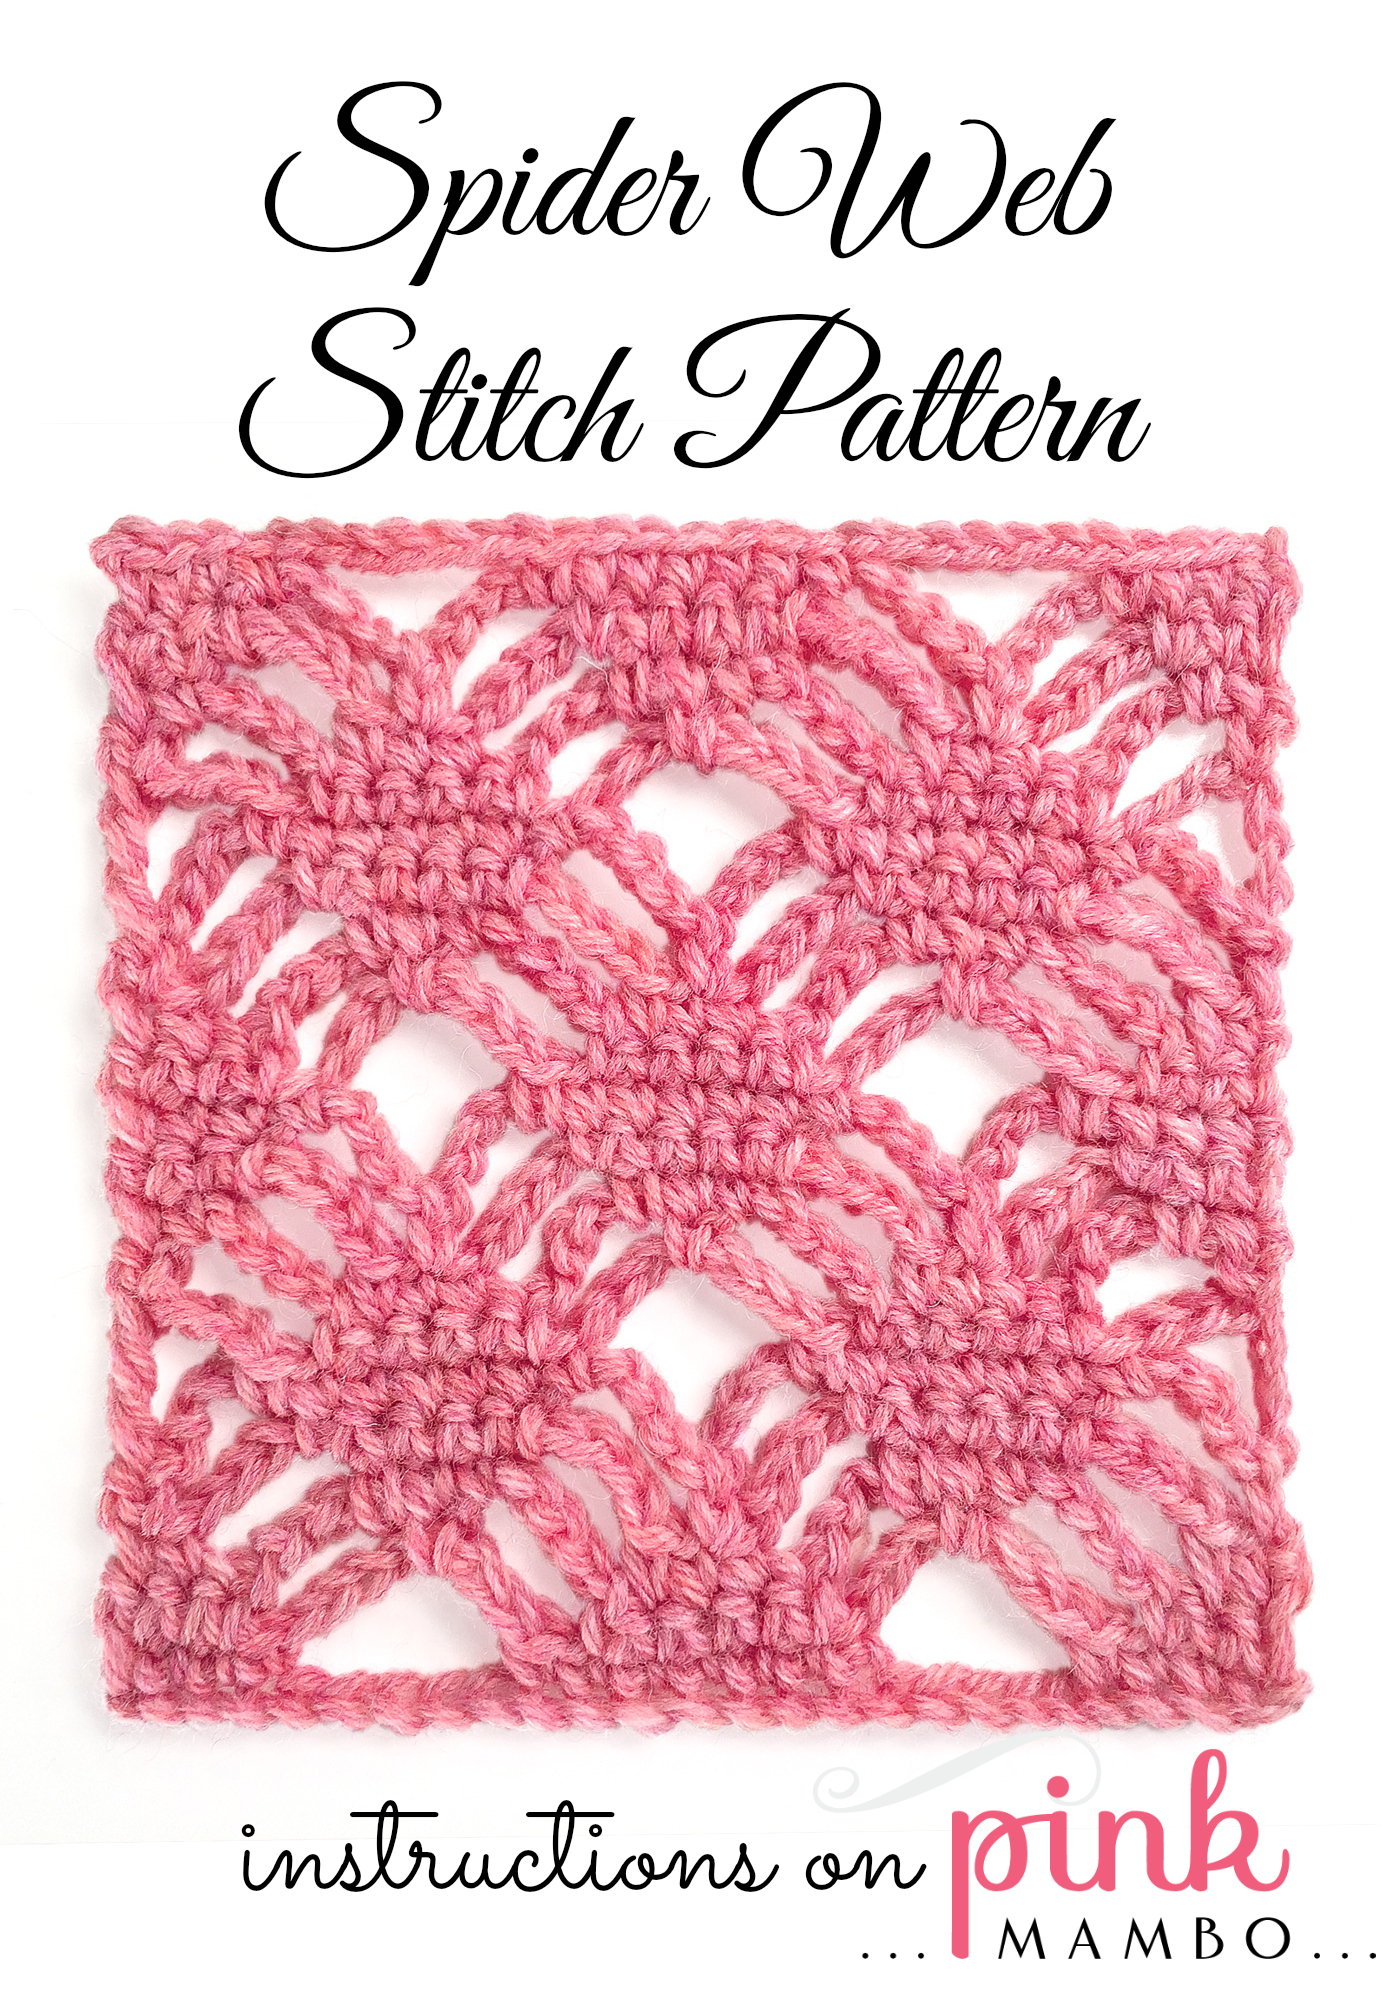 Crochet Stitch Patterns : Spider Web Crochet Stitch Pattern - Pink Mambo